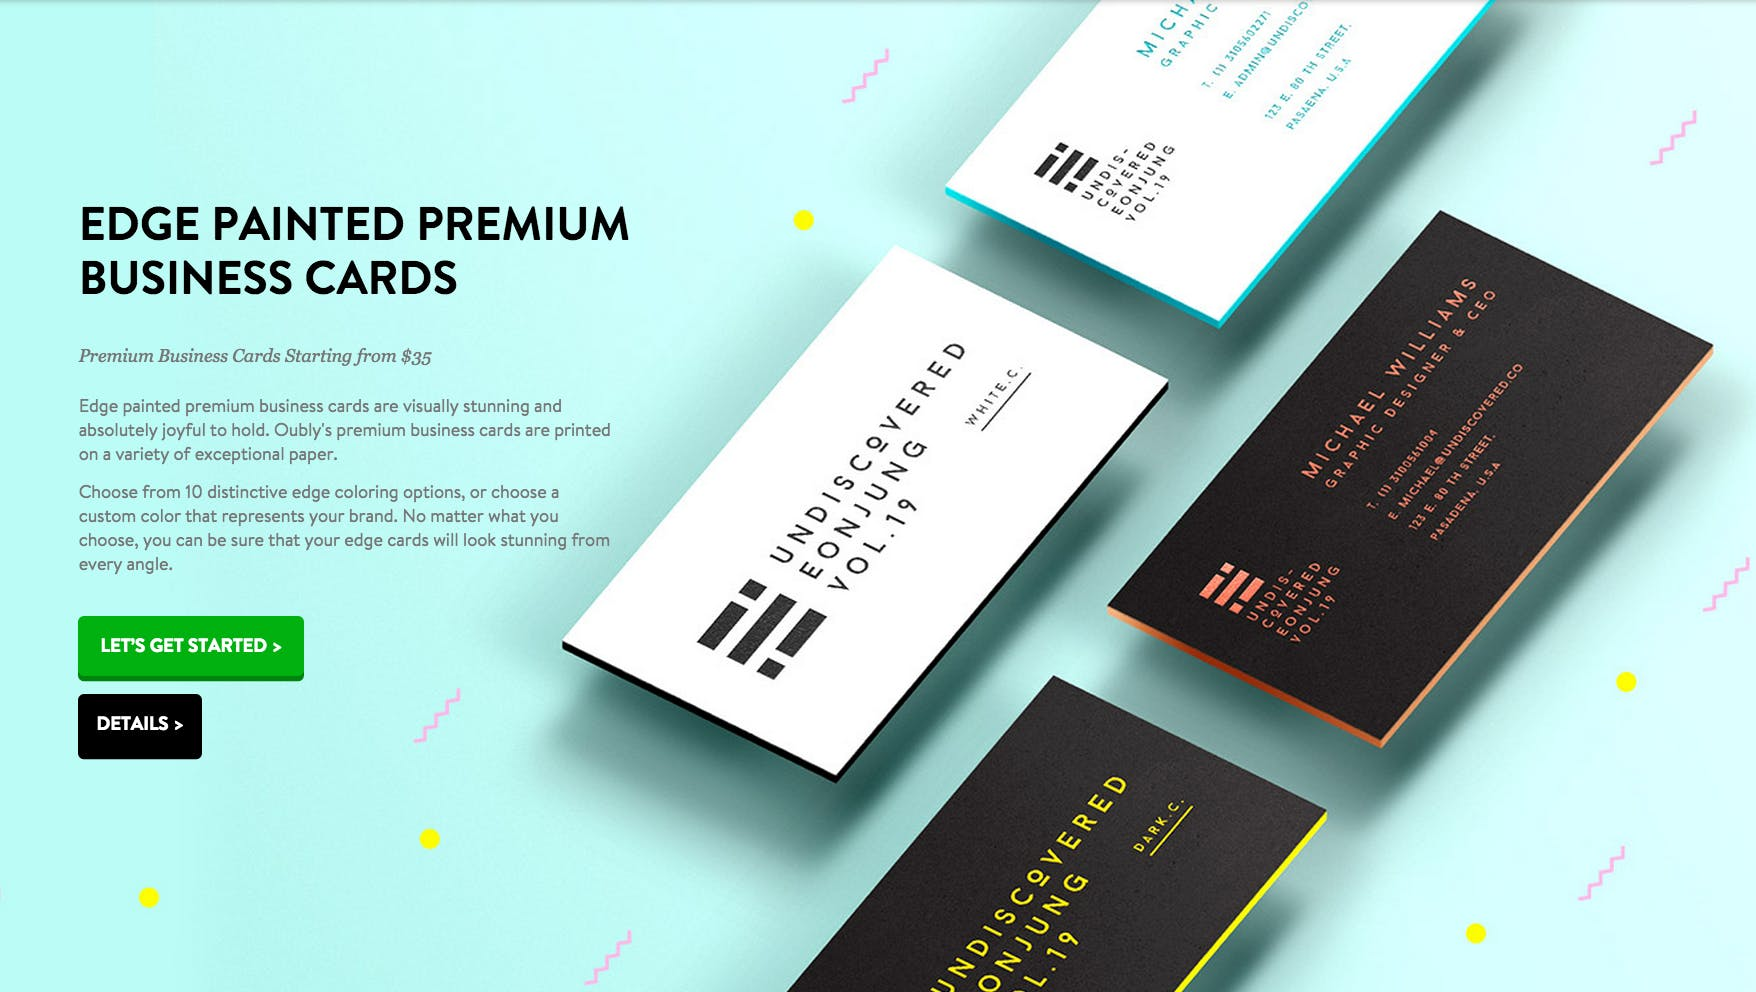 Oubly edge painted business cards product hunt reheart Image collections